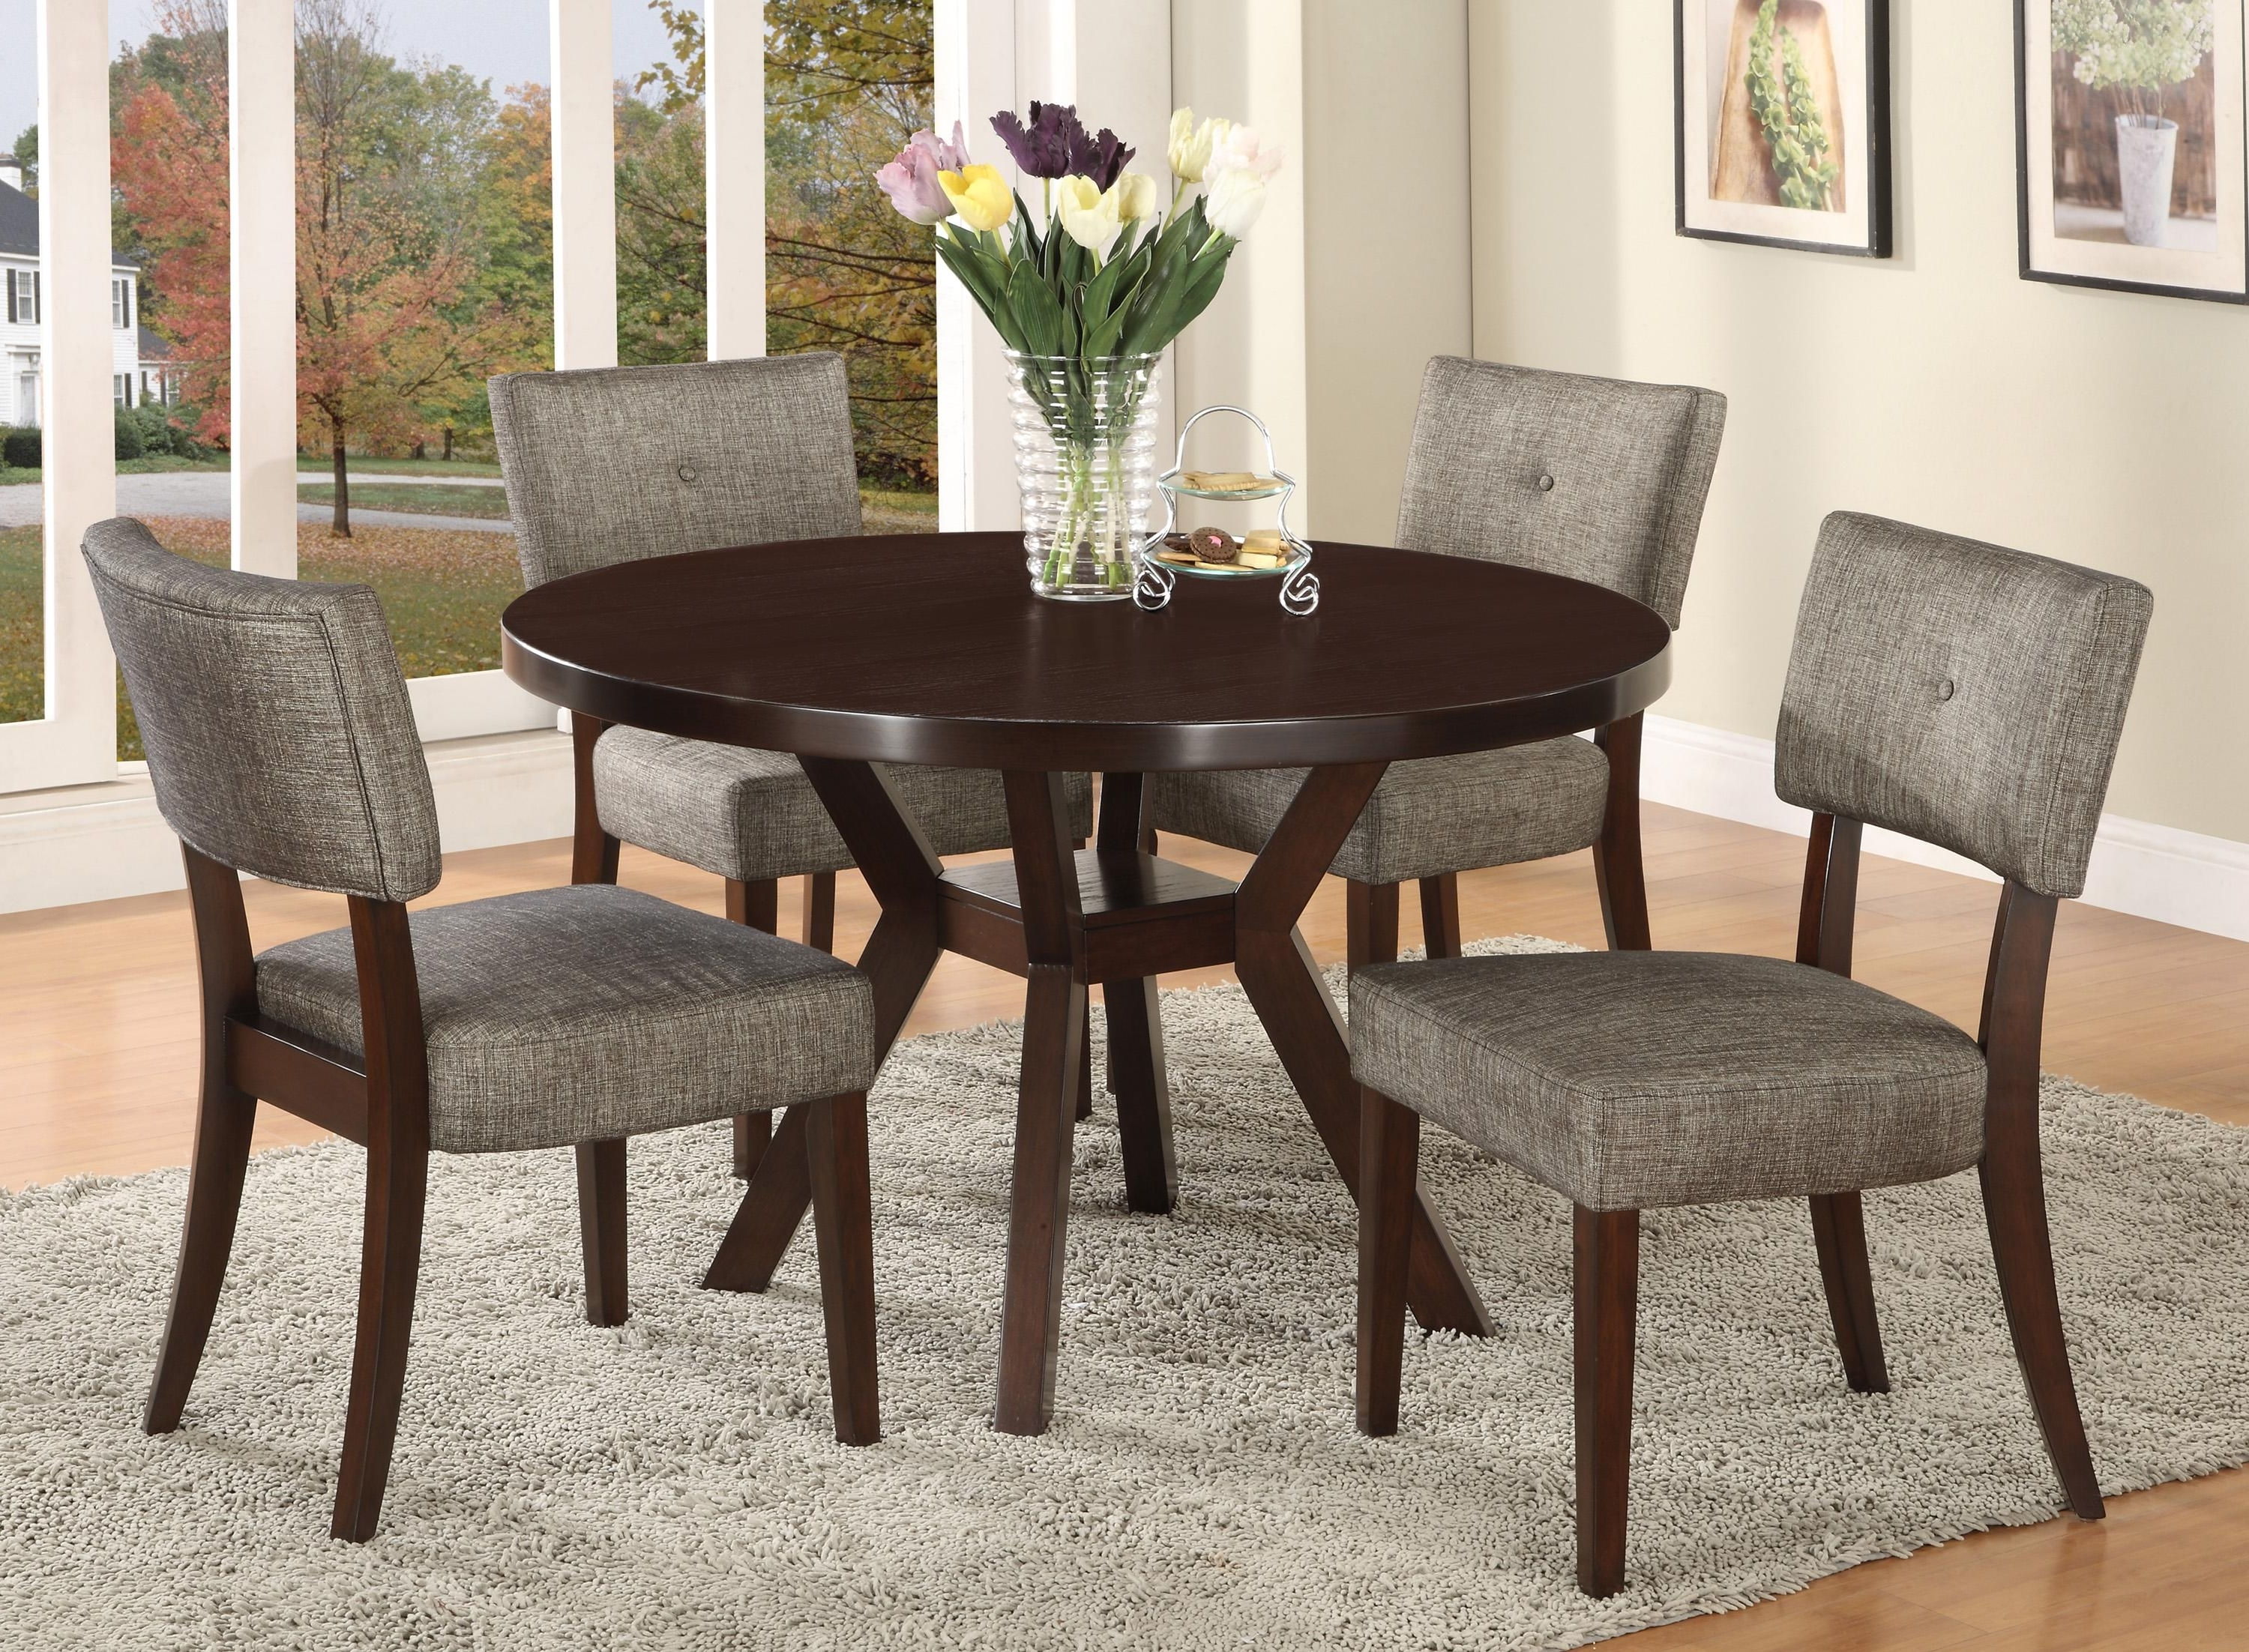 Wayside Regarding Famous Valencia 5 Piece Round Dining Sets With Uph Seat Side Chairs (View 5 of 25)